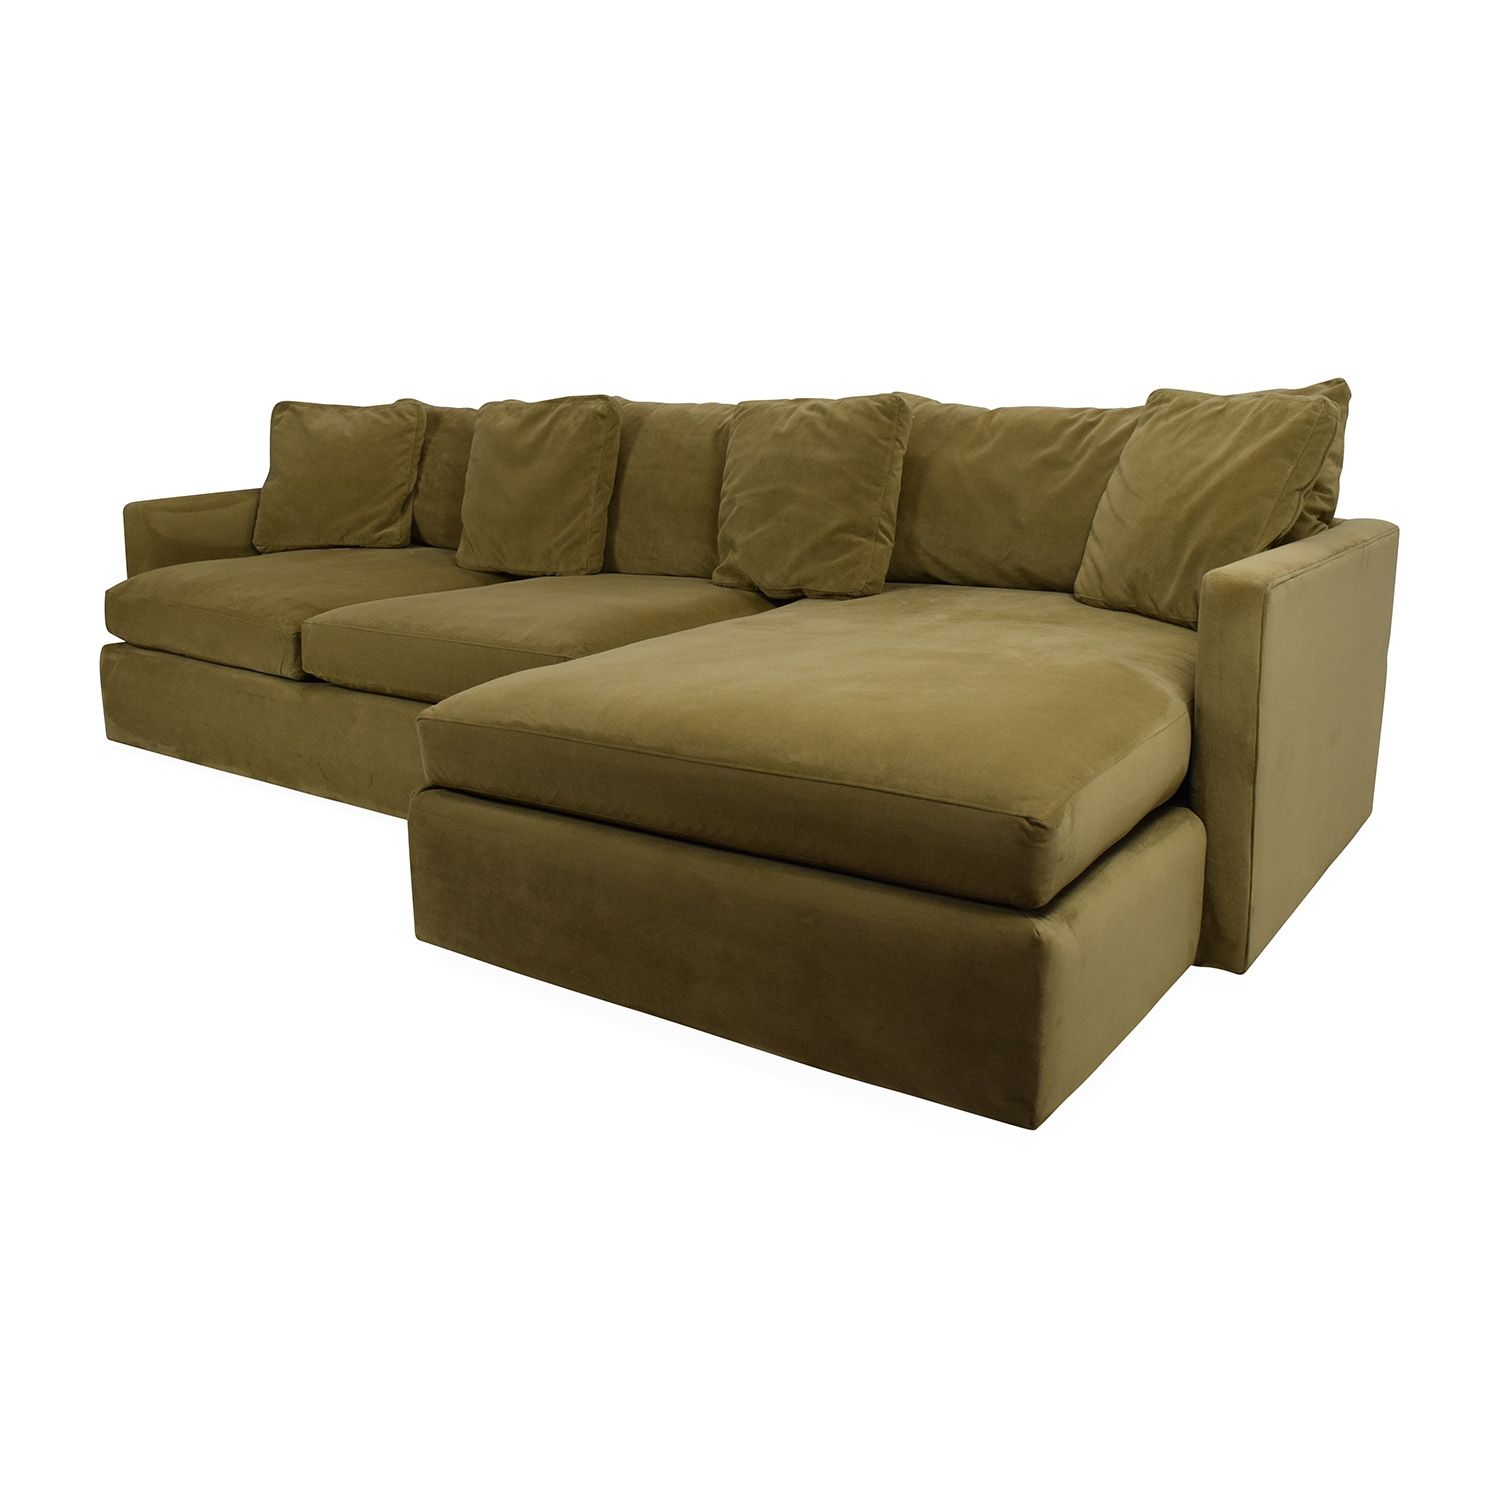 2nd hand sectional sofa denim stretch slipcover second couches http ml2r com pinterest